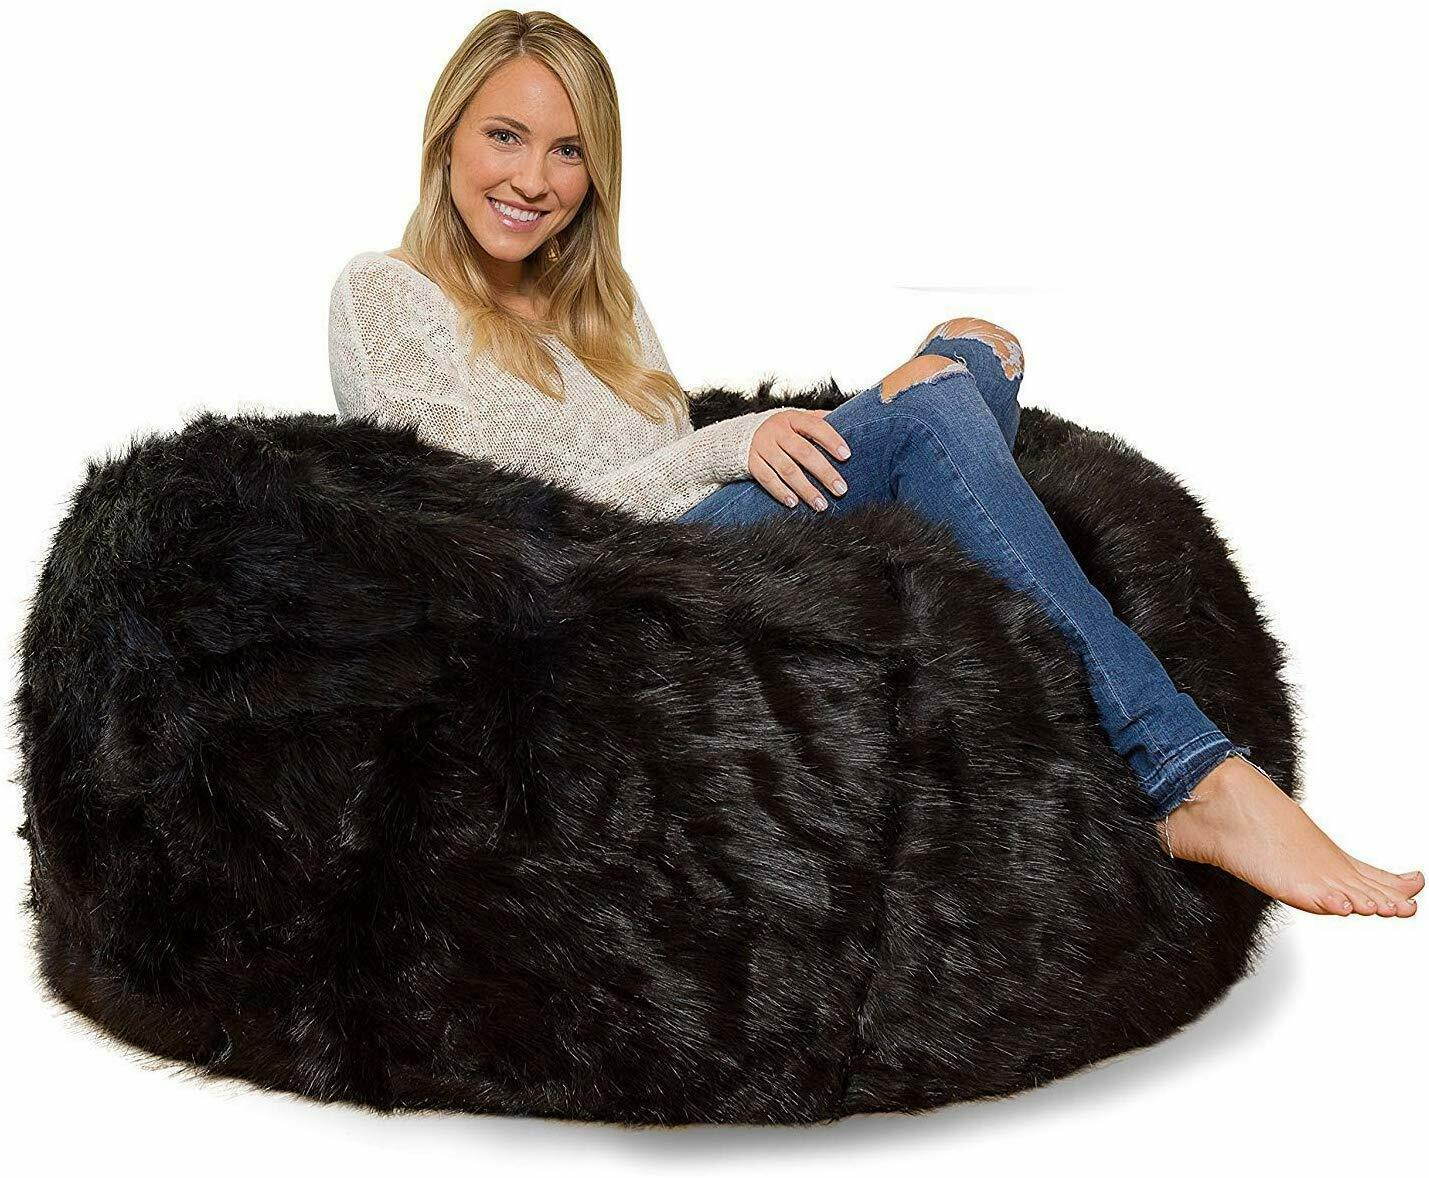 Leather Fur U and I Design Bean Bag and Cover, XXXL/9mm (Black) Free Shipping image 4